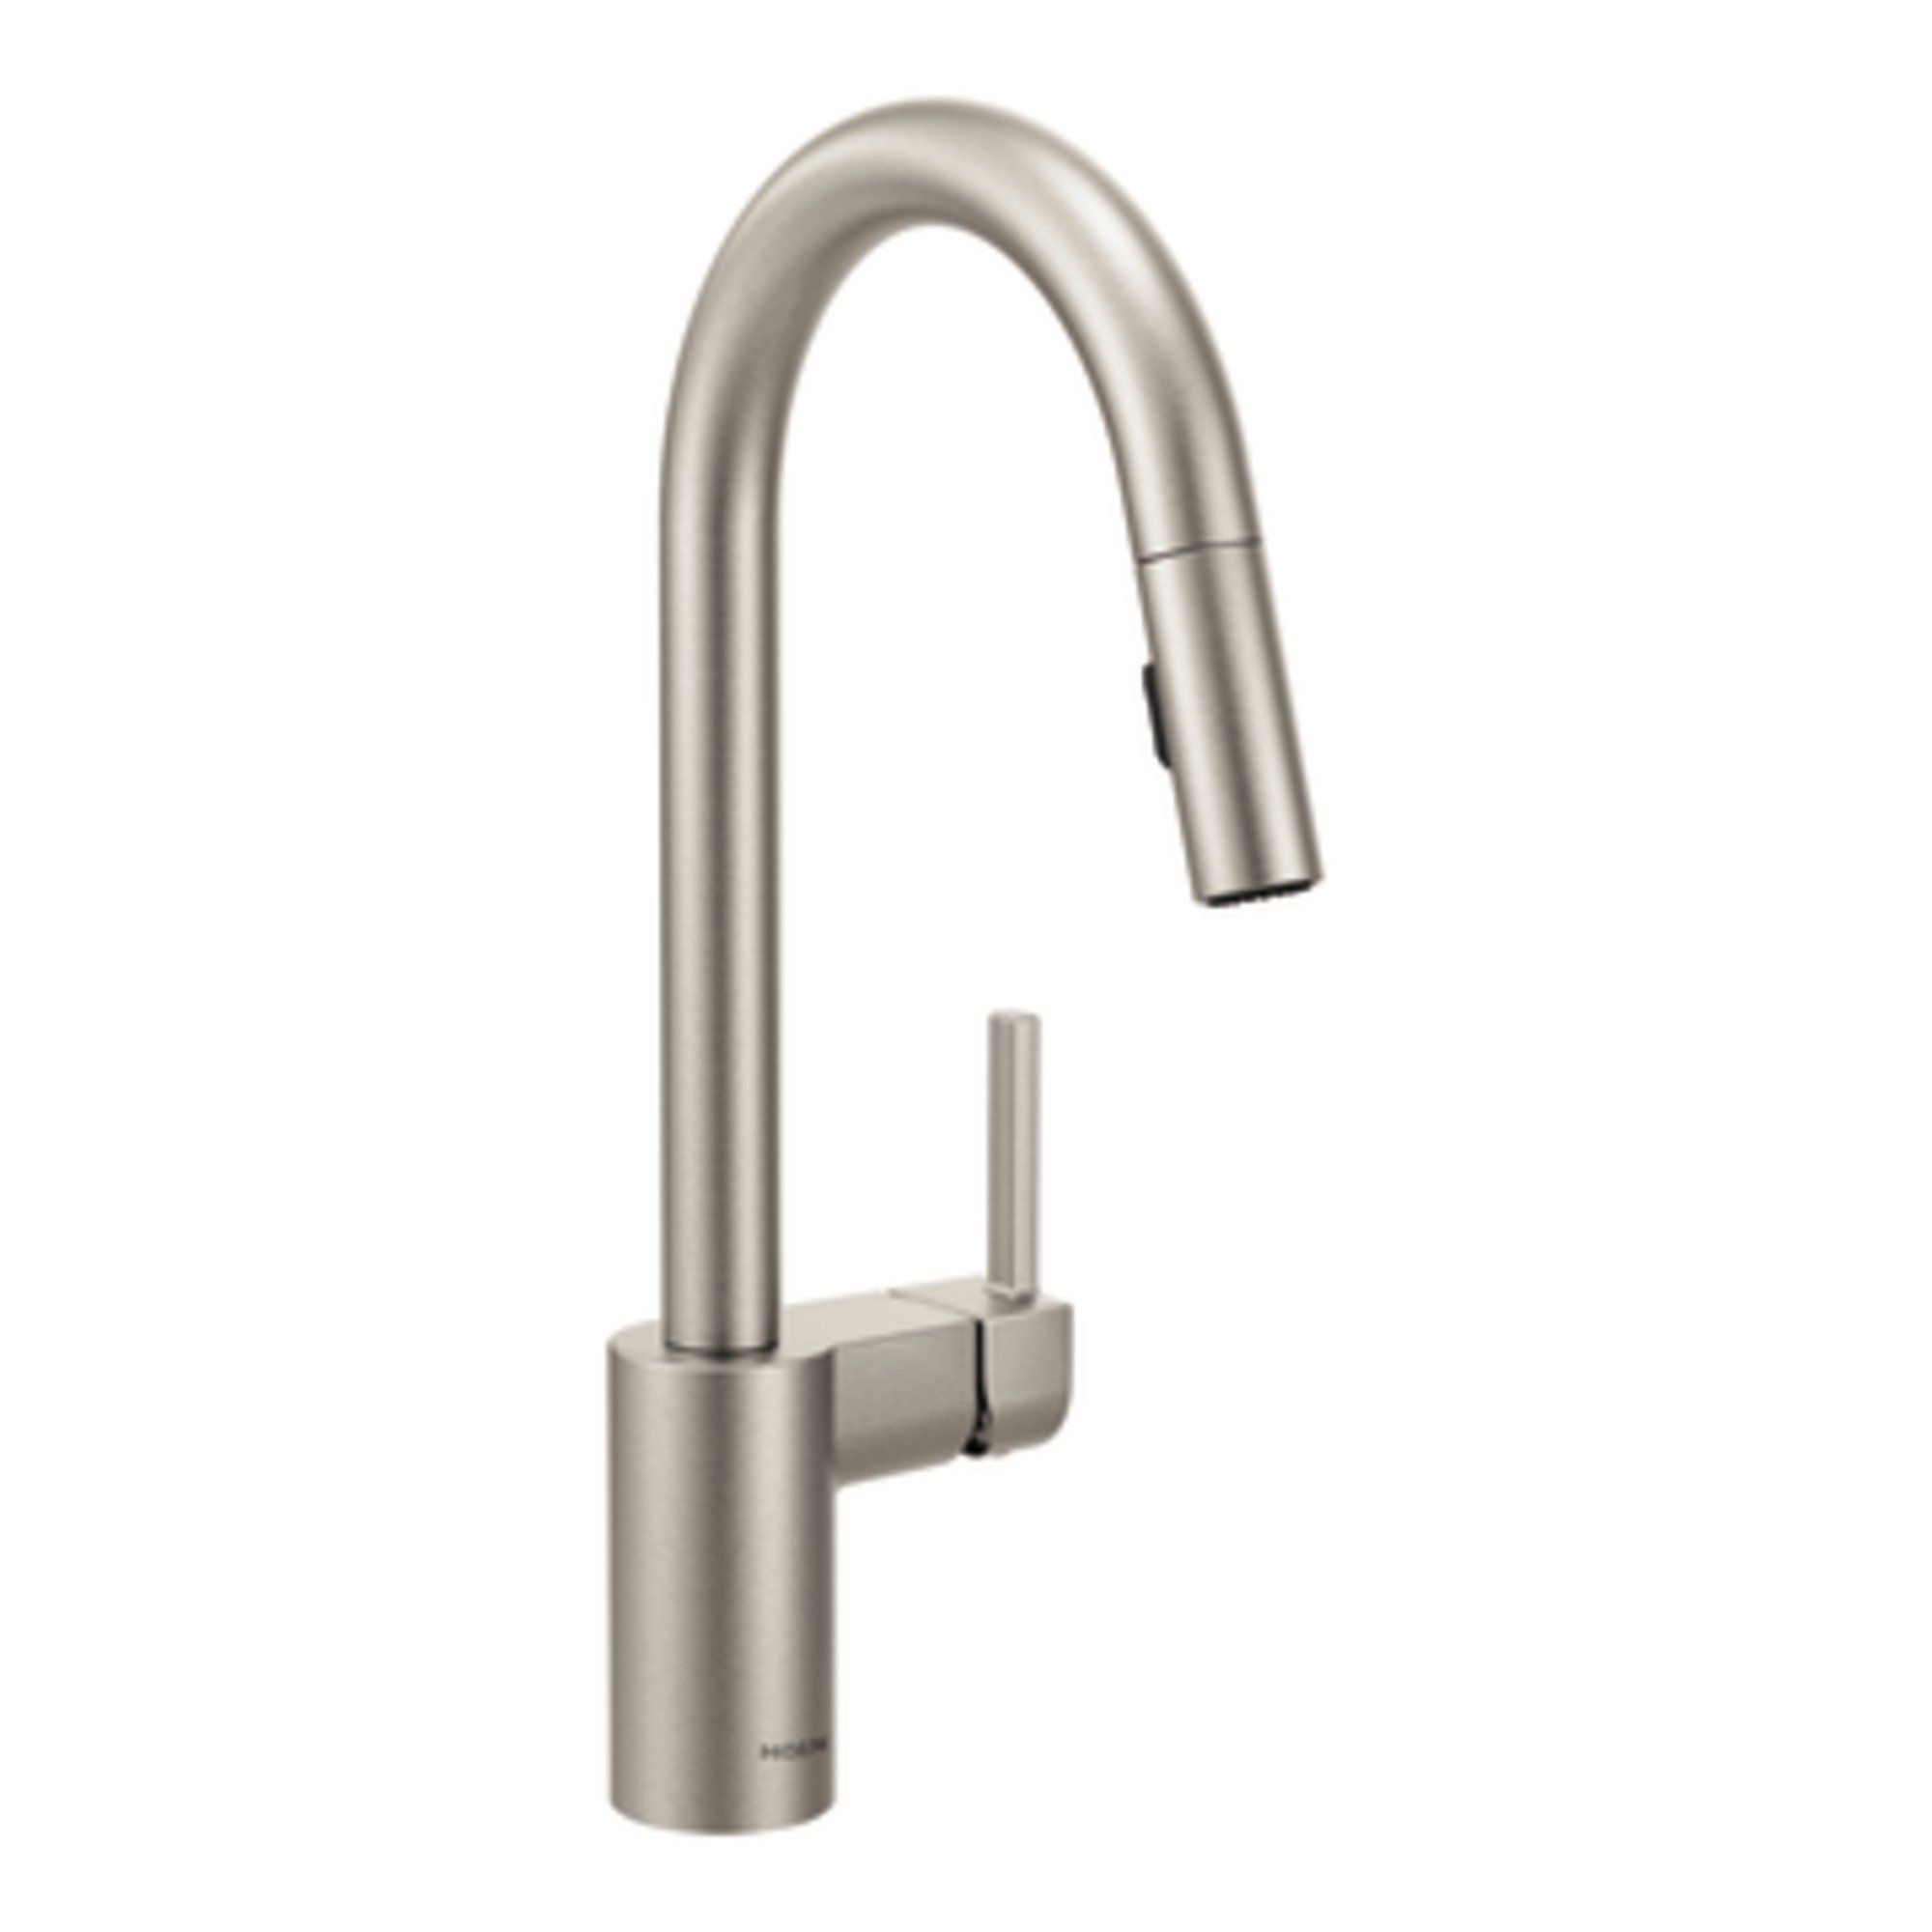 s us products faucets faucet toilet water austinmartin modern of delta festooning inspirational parts beverage new